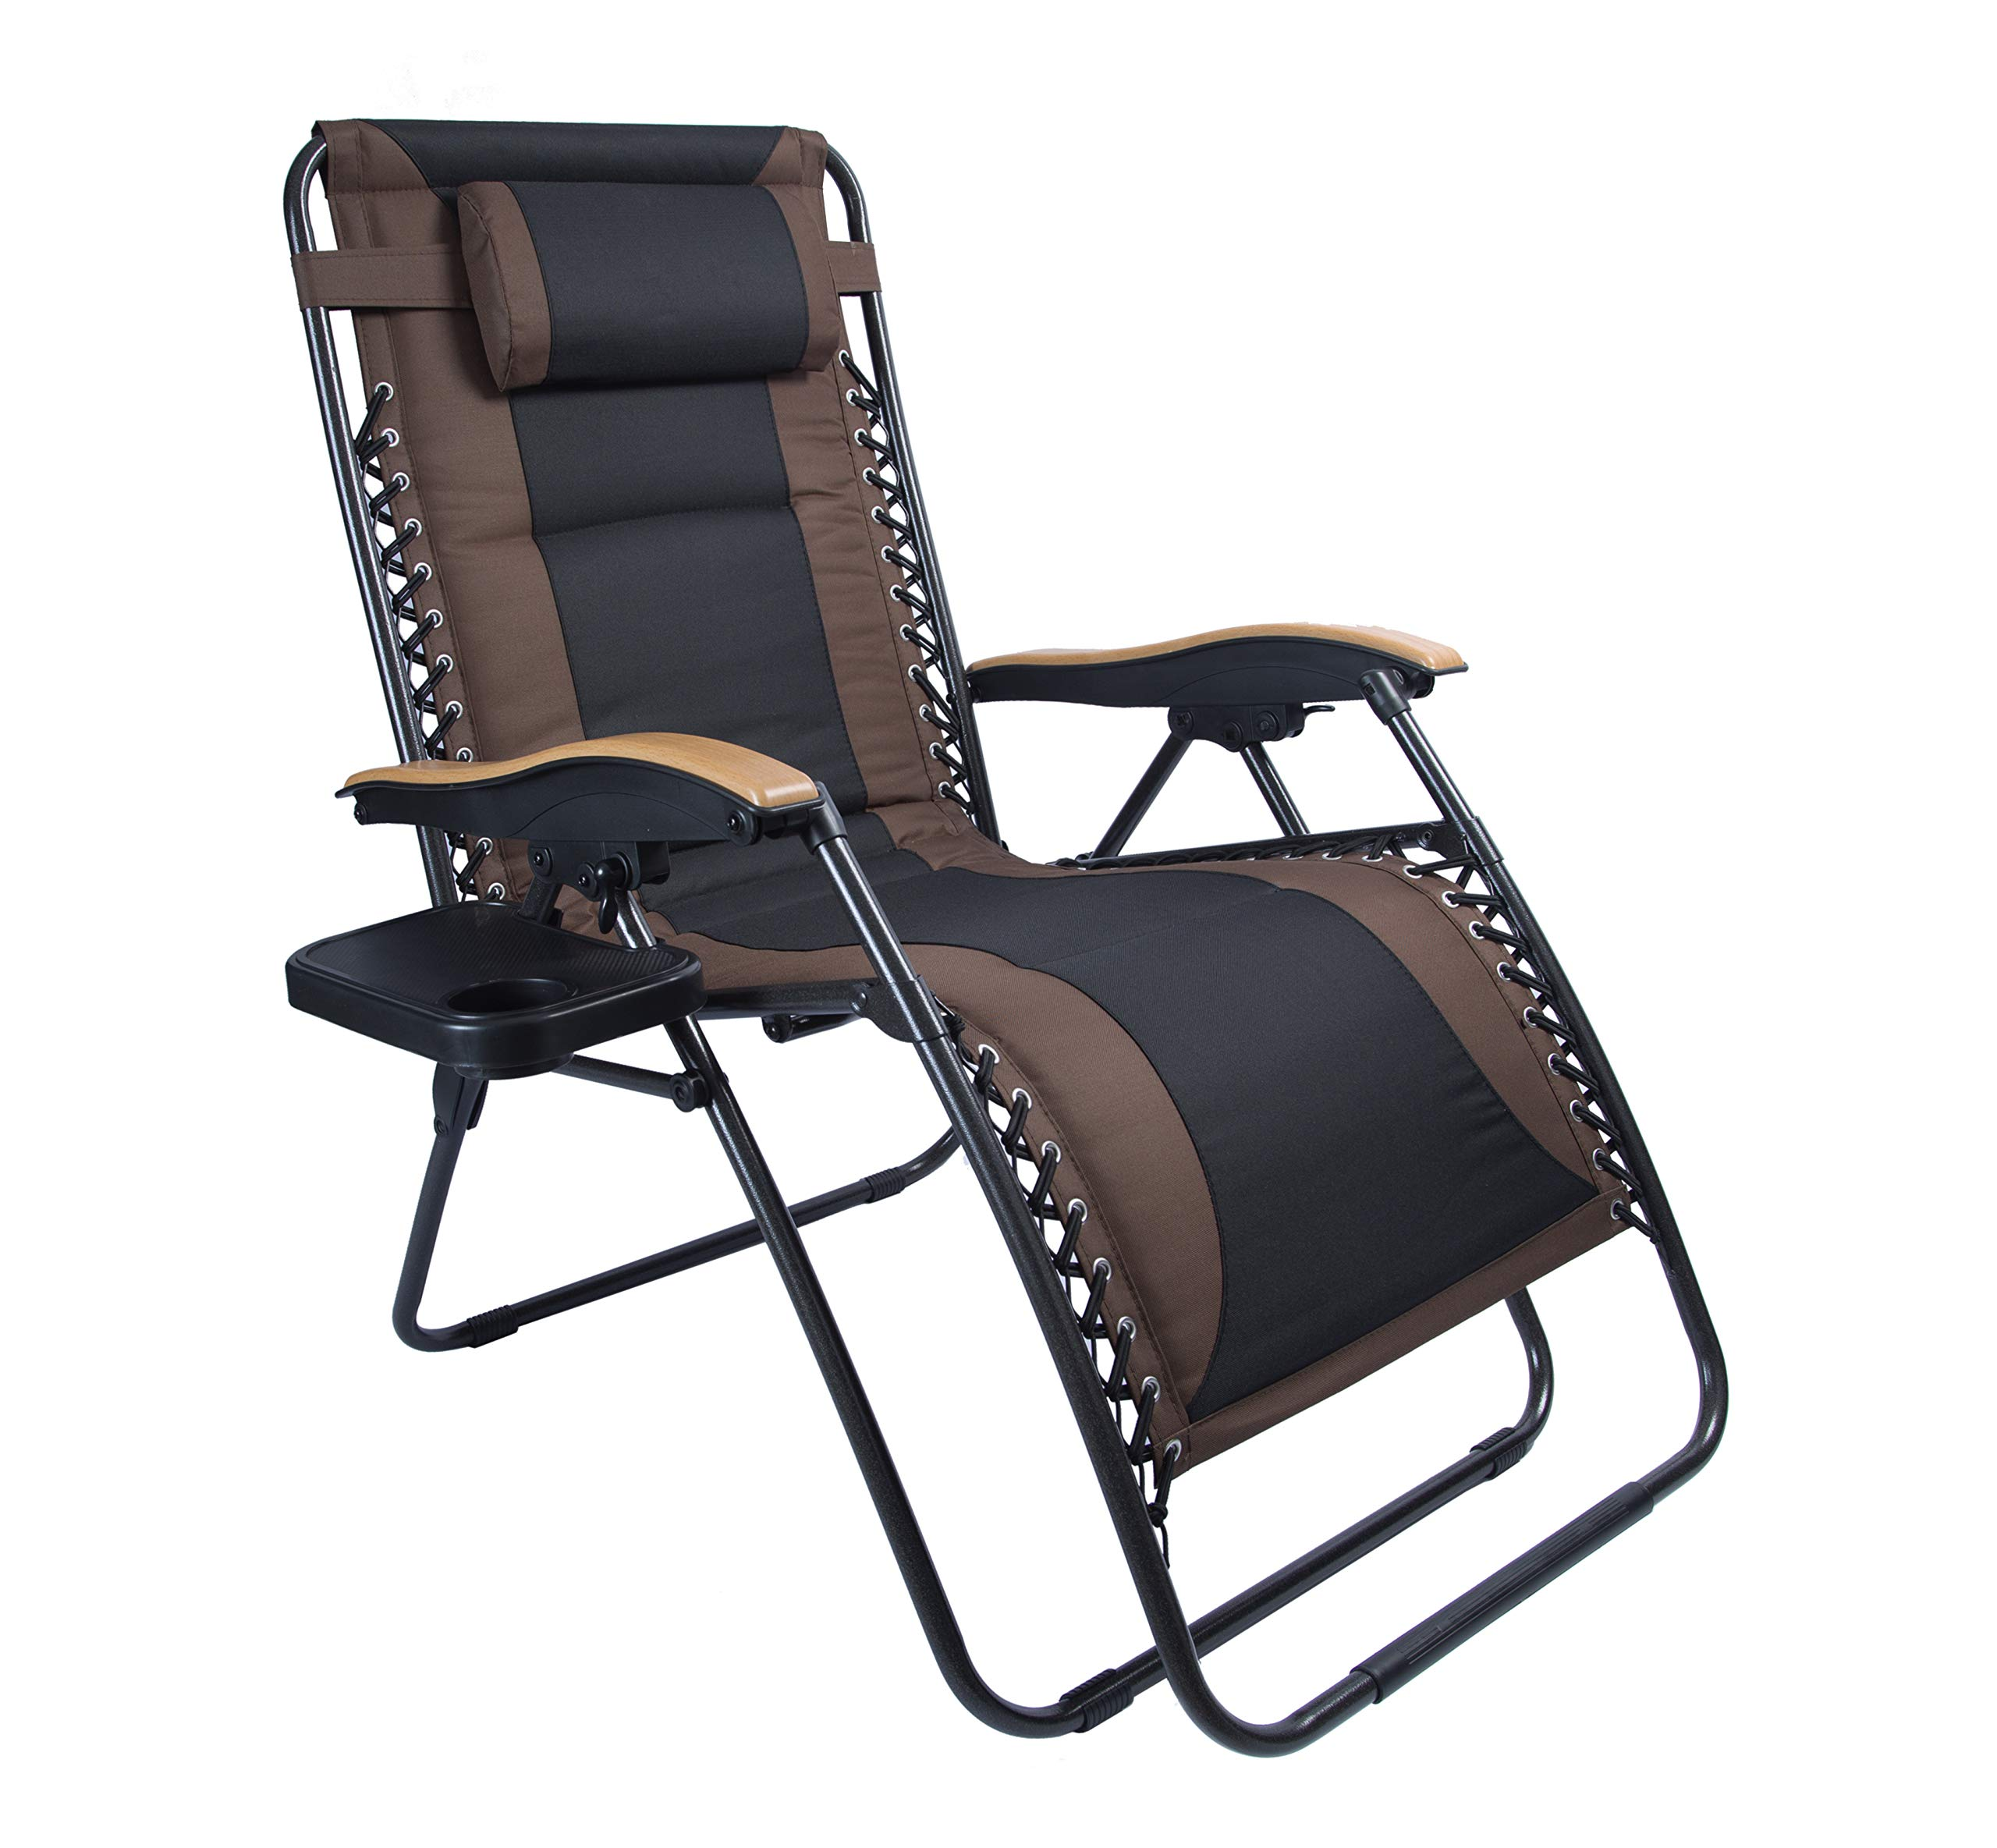 LUCKYBERRY Deluxe Oversized Padded Zero Gravity Chair XL Black Brown Cup Holder Lounge Patio Chairs Outdoor Yard Beach Support 350lbs by LUCKYBERRY